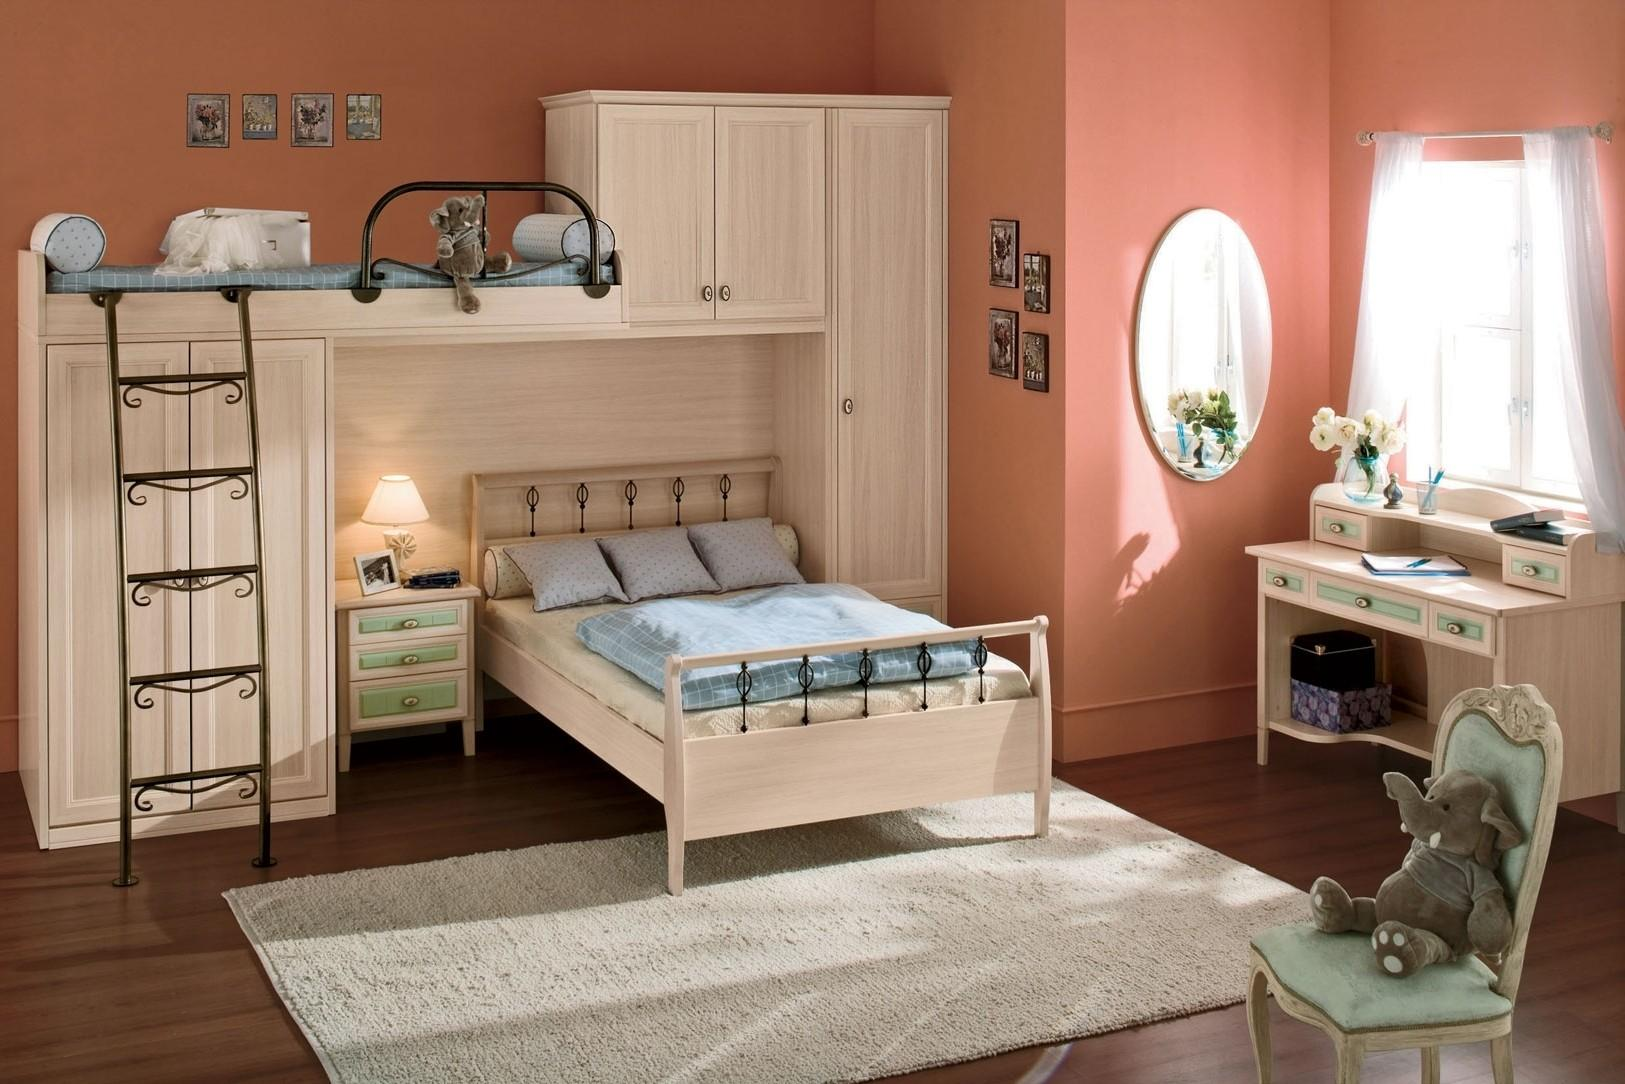 Rustic Modern Beds Farmhouse Rooms Kids Room